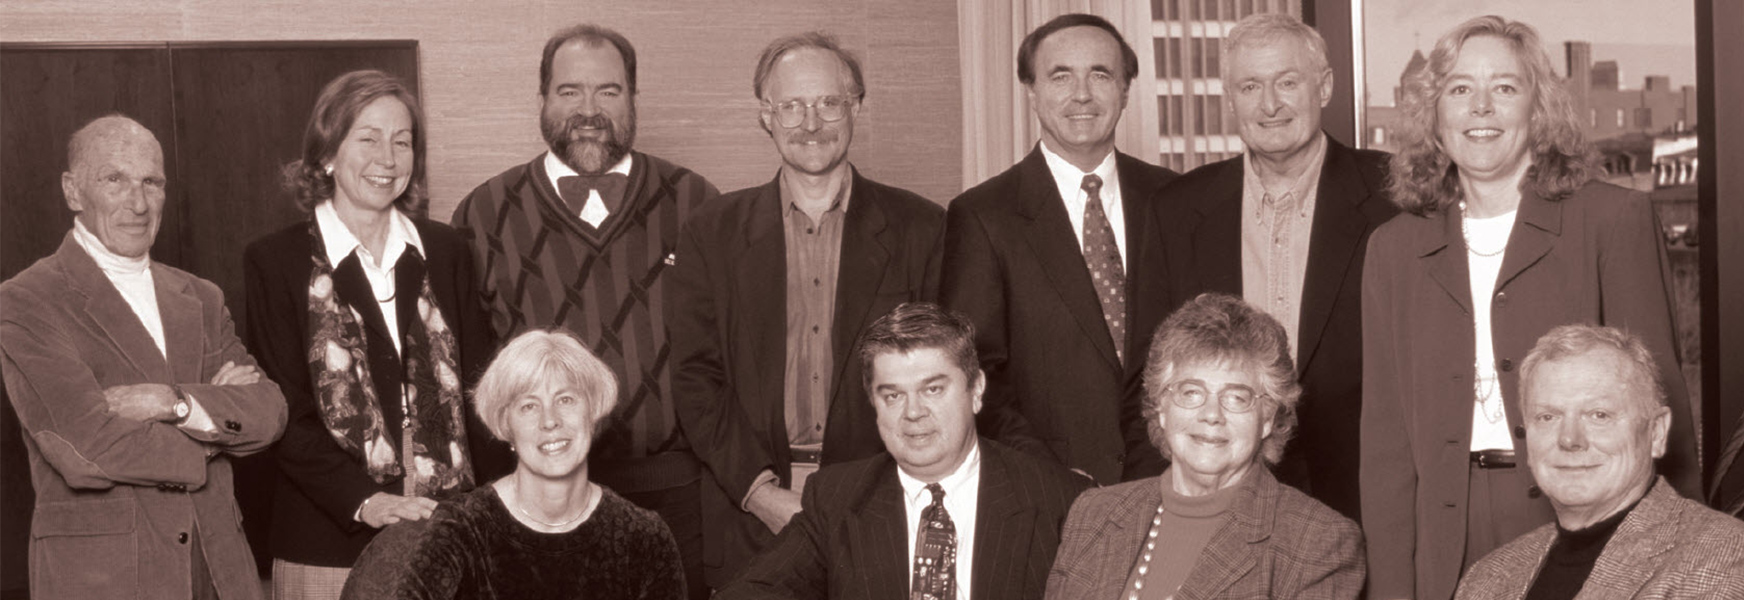 MEMIC Board of Directors from 1998